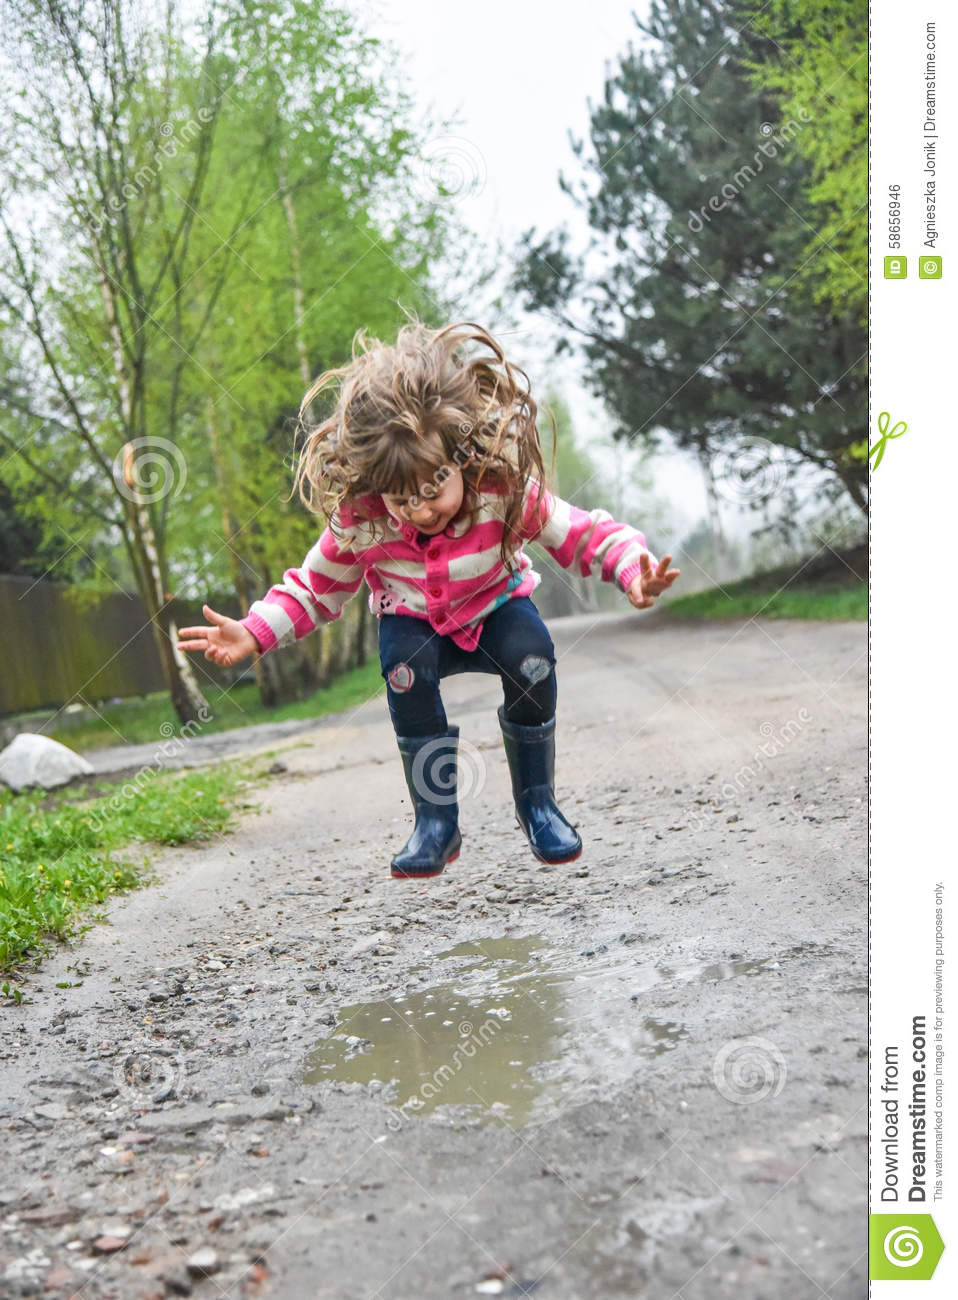 Girl jumping in a paddle